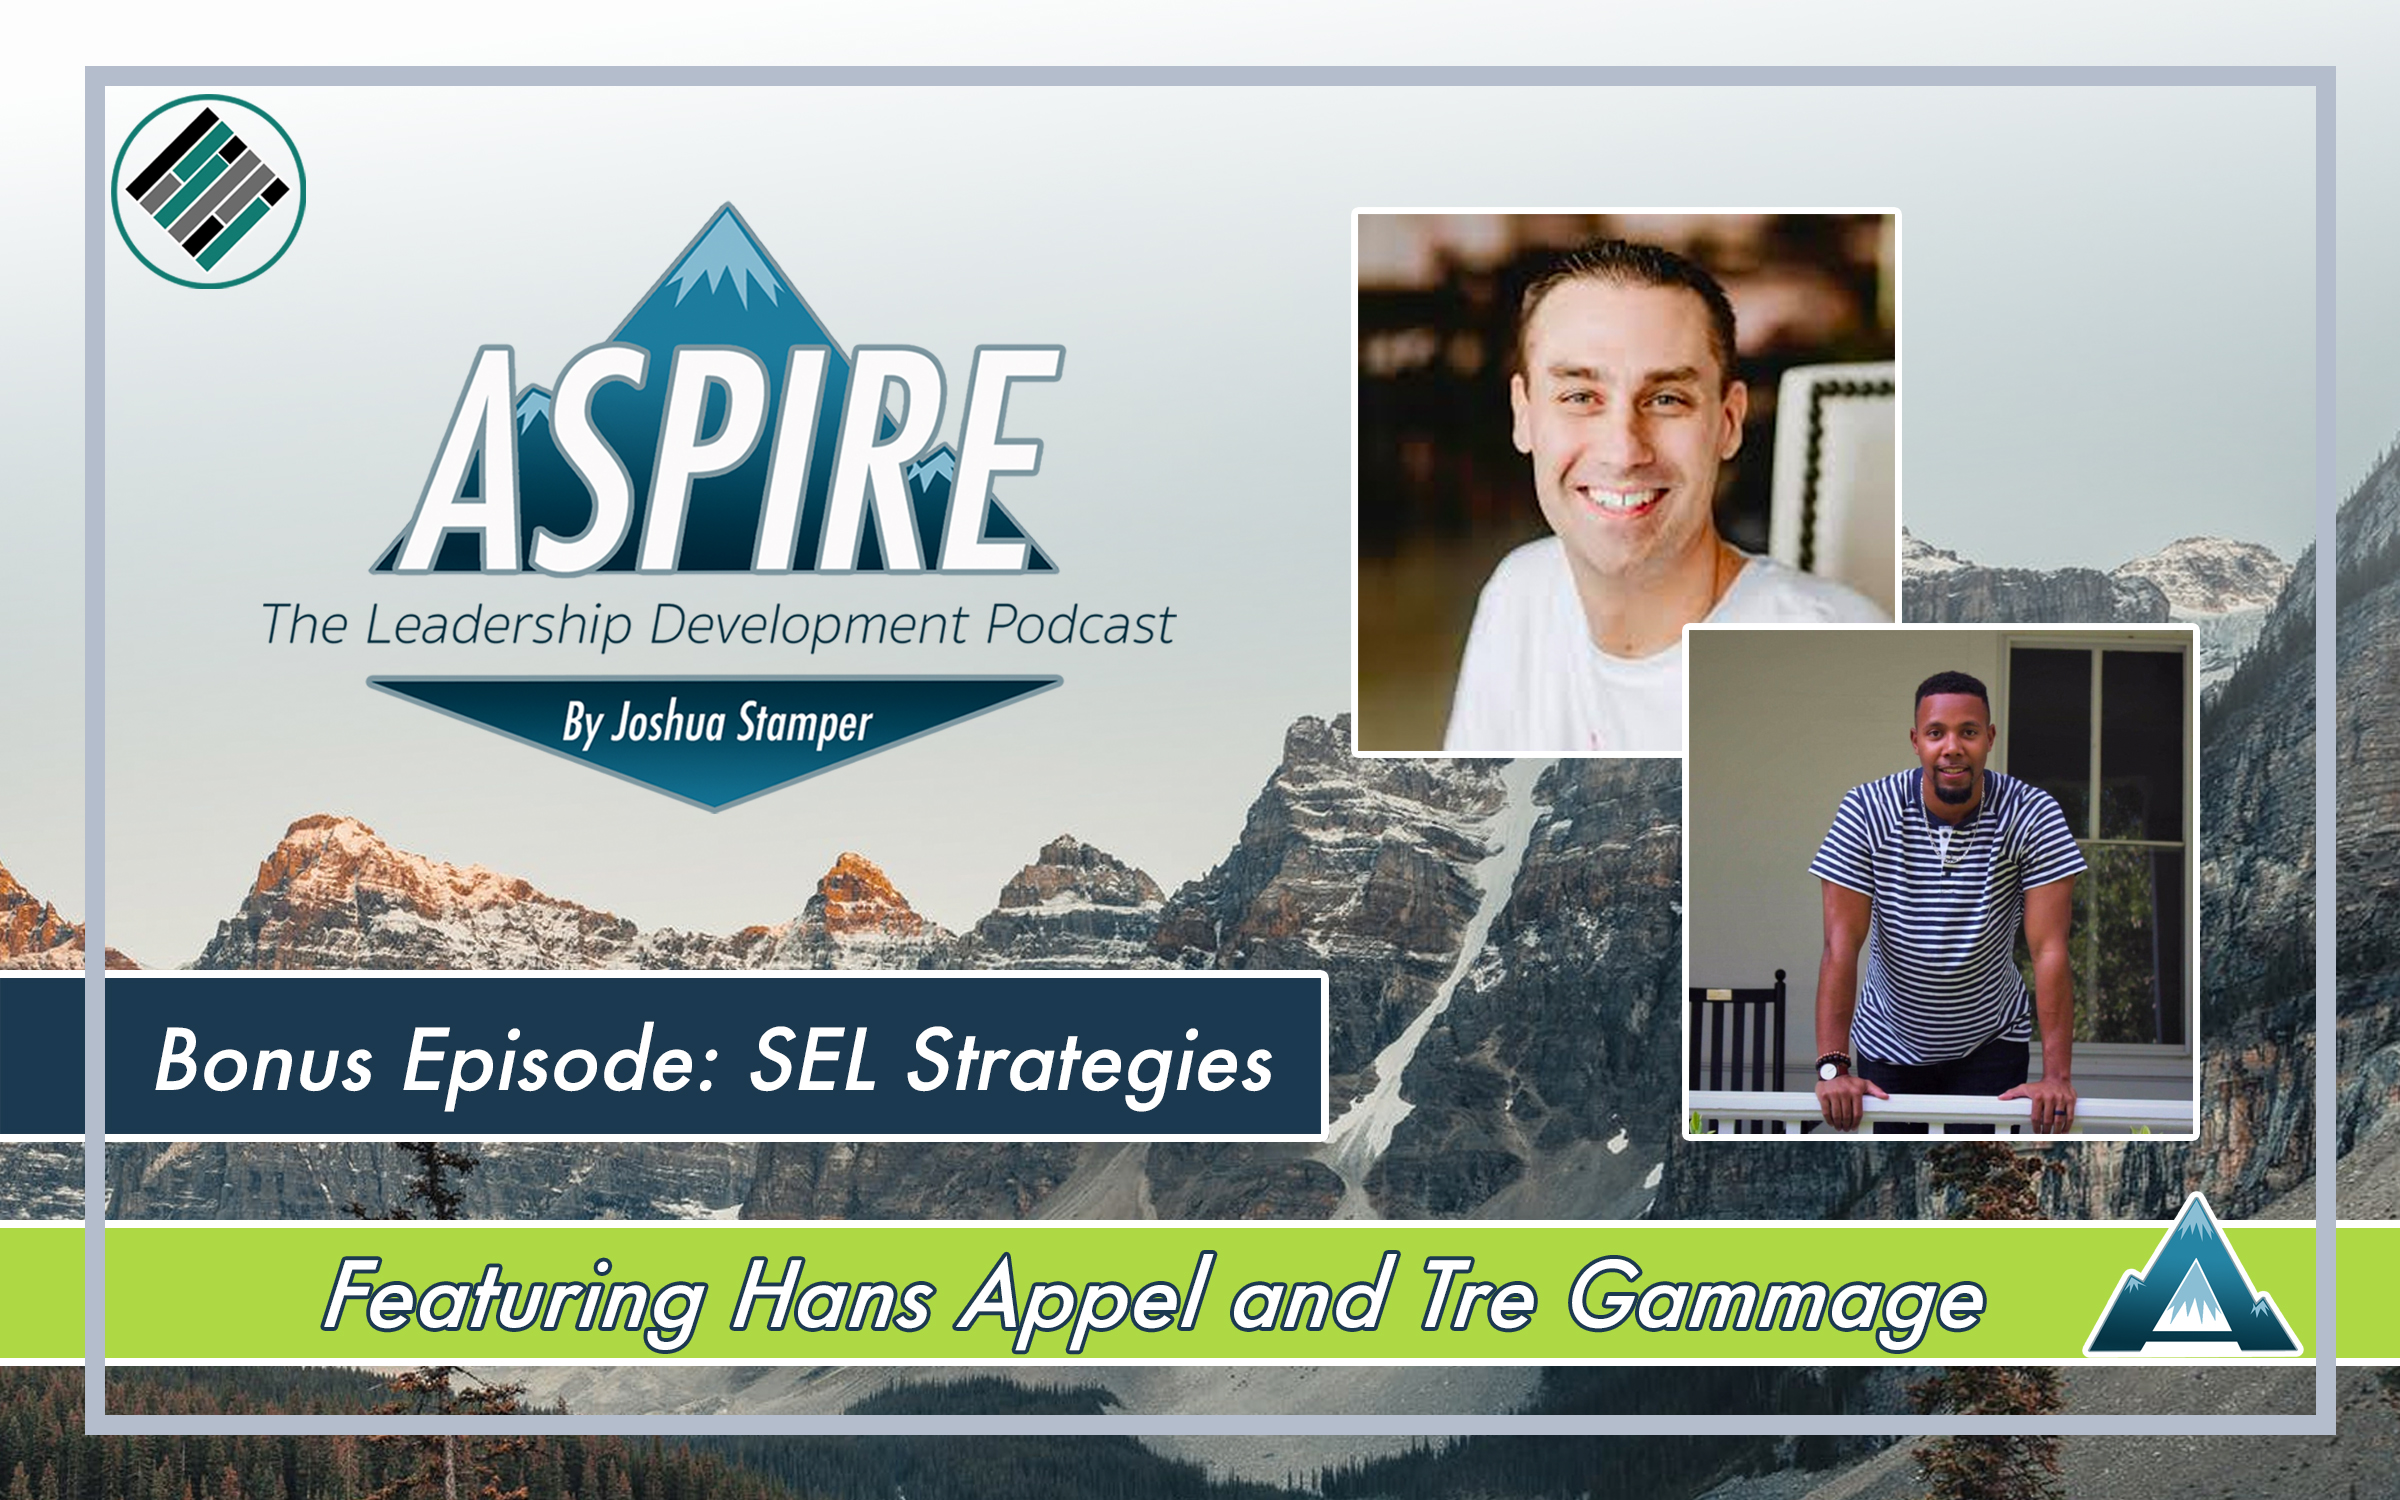 Aspire: The Leadership Development Podcast, Joshua Stamper, Hans Appel, Tre Gammage, Teach Better, SEL